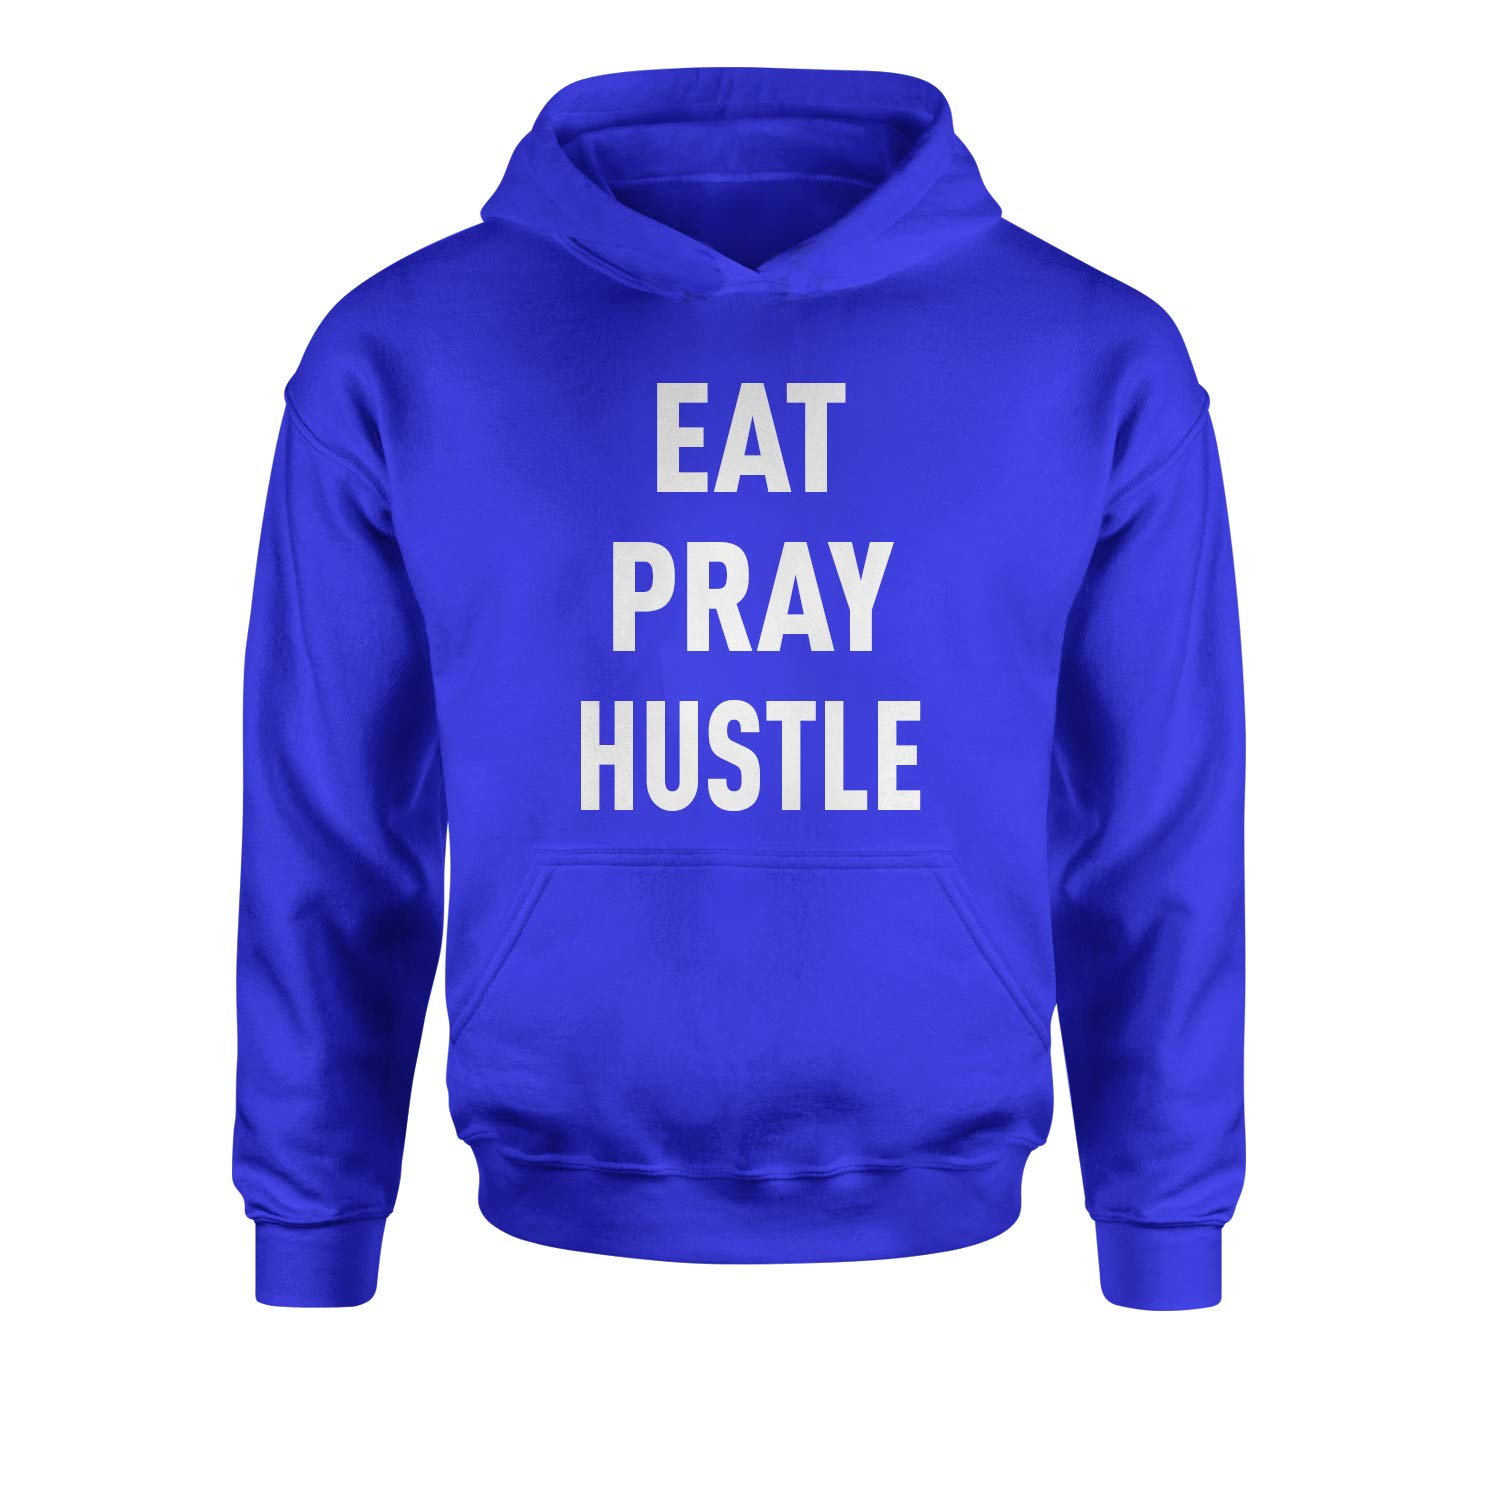 Expression Tees Eat Pray Hustle Youth-Sized Hoodie